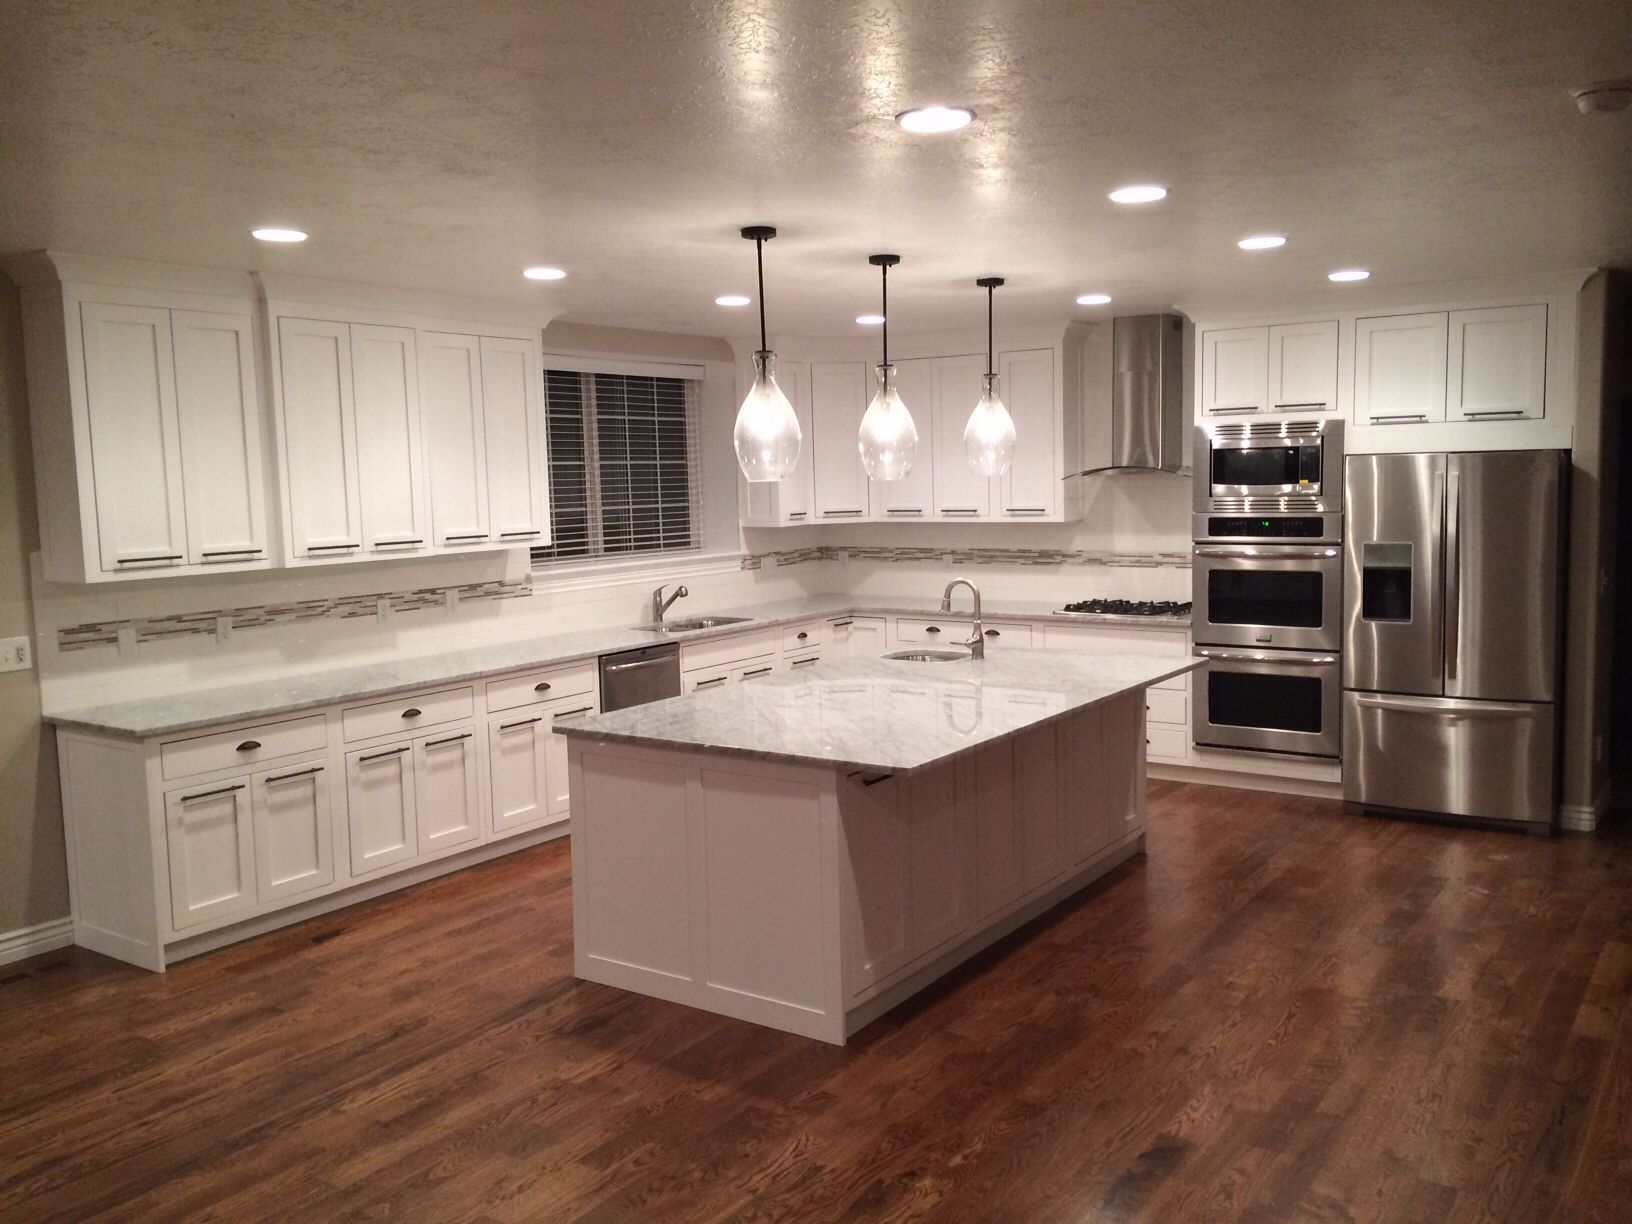 White Kitchens With Wood Floors White Cabinets Hardwood Floors Home Ideas I 3 Pinterest